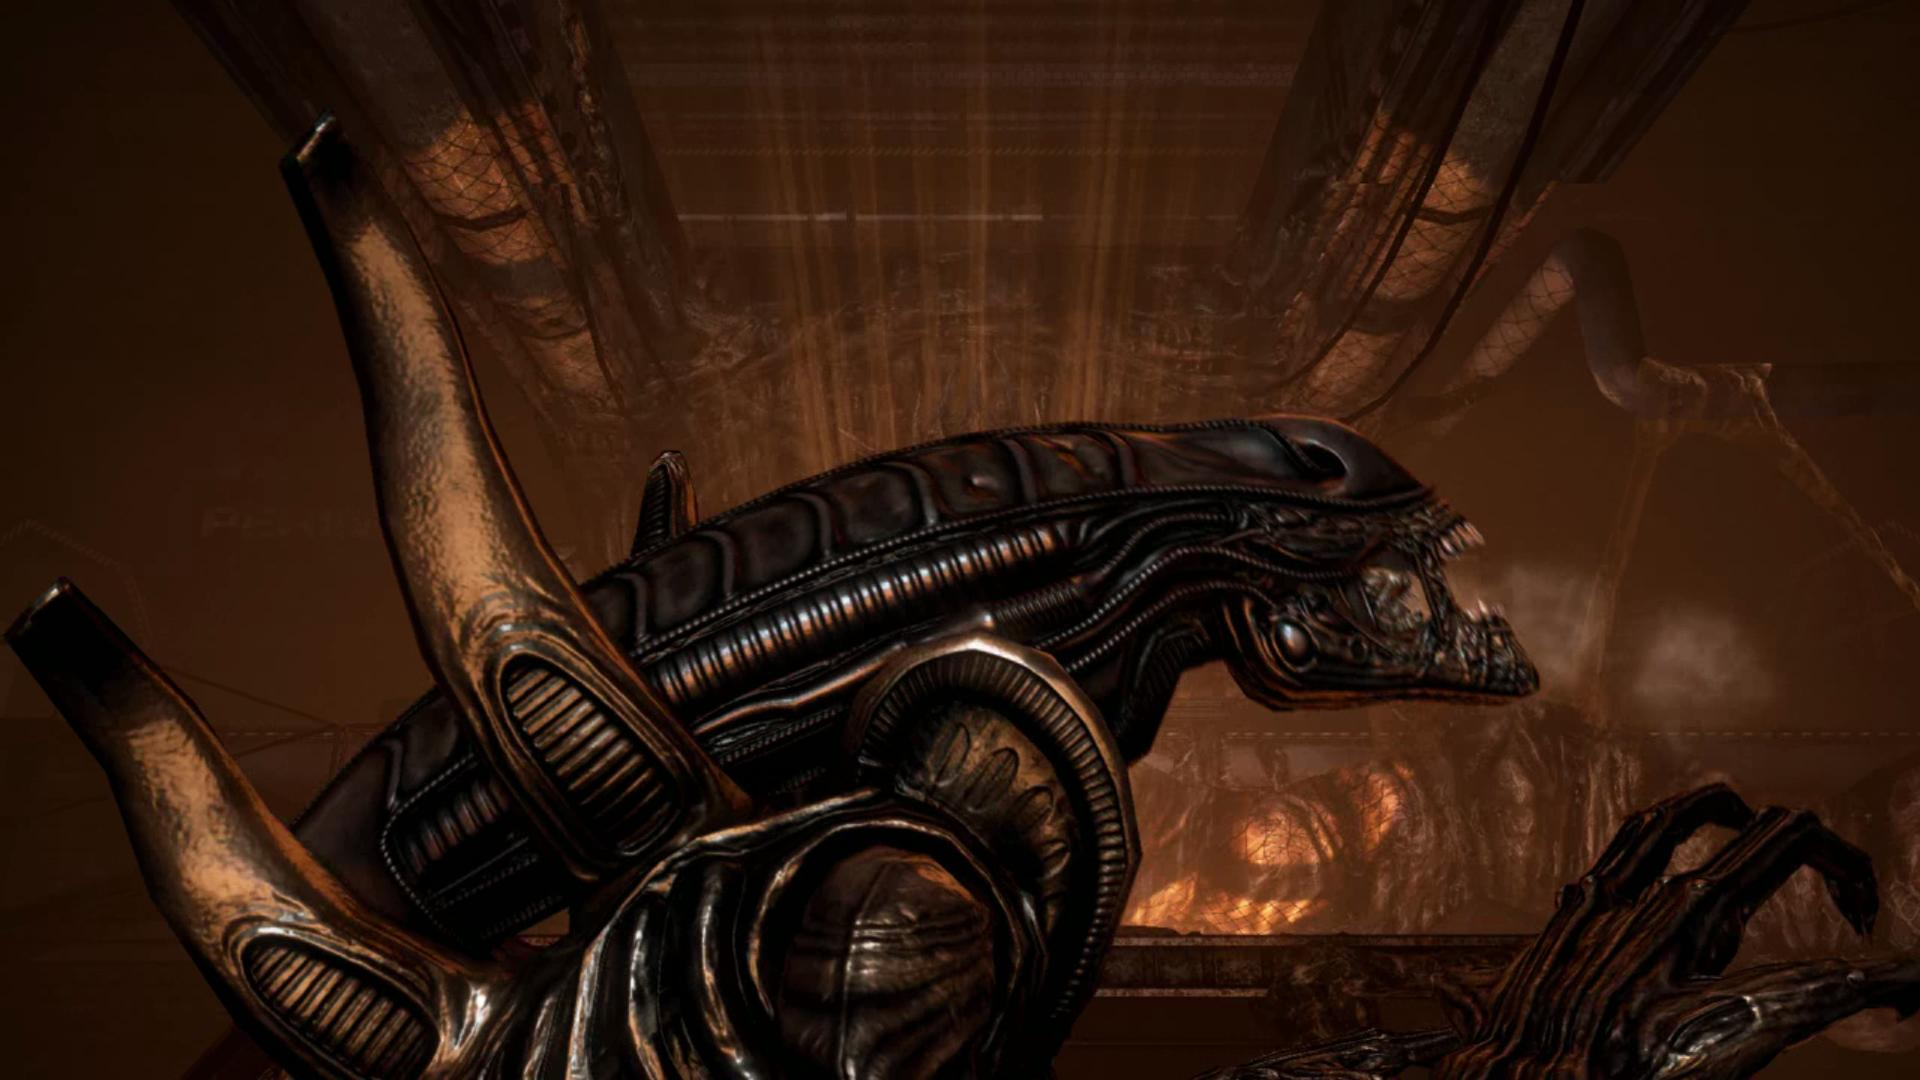 Alien Full HD Wallpaper and Background | 1920x1080 | ID:118837 H.r. Giger Wallpaper